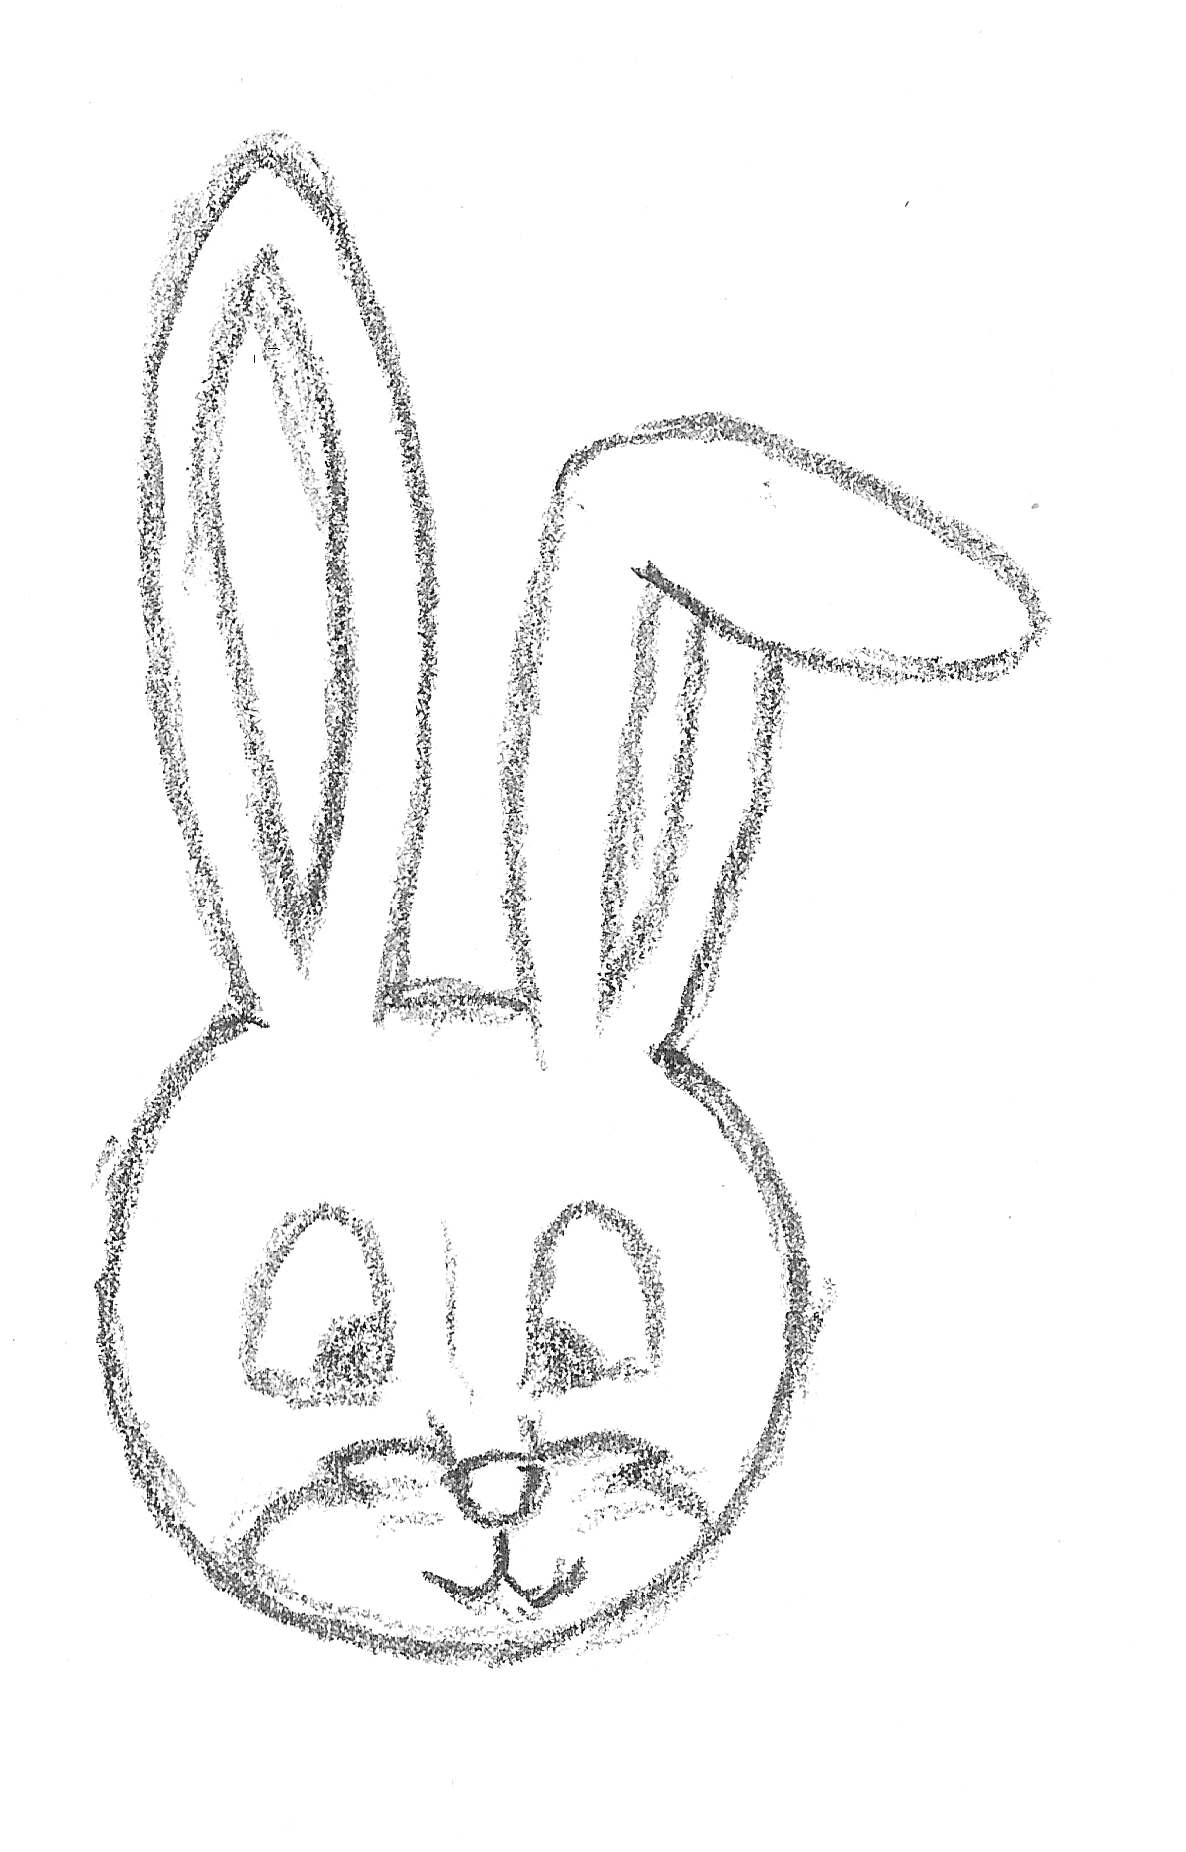 how to draw a rabbit face how to draw a rabbit face easy drawing art ideas rabbit a draw to how face